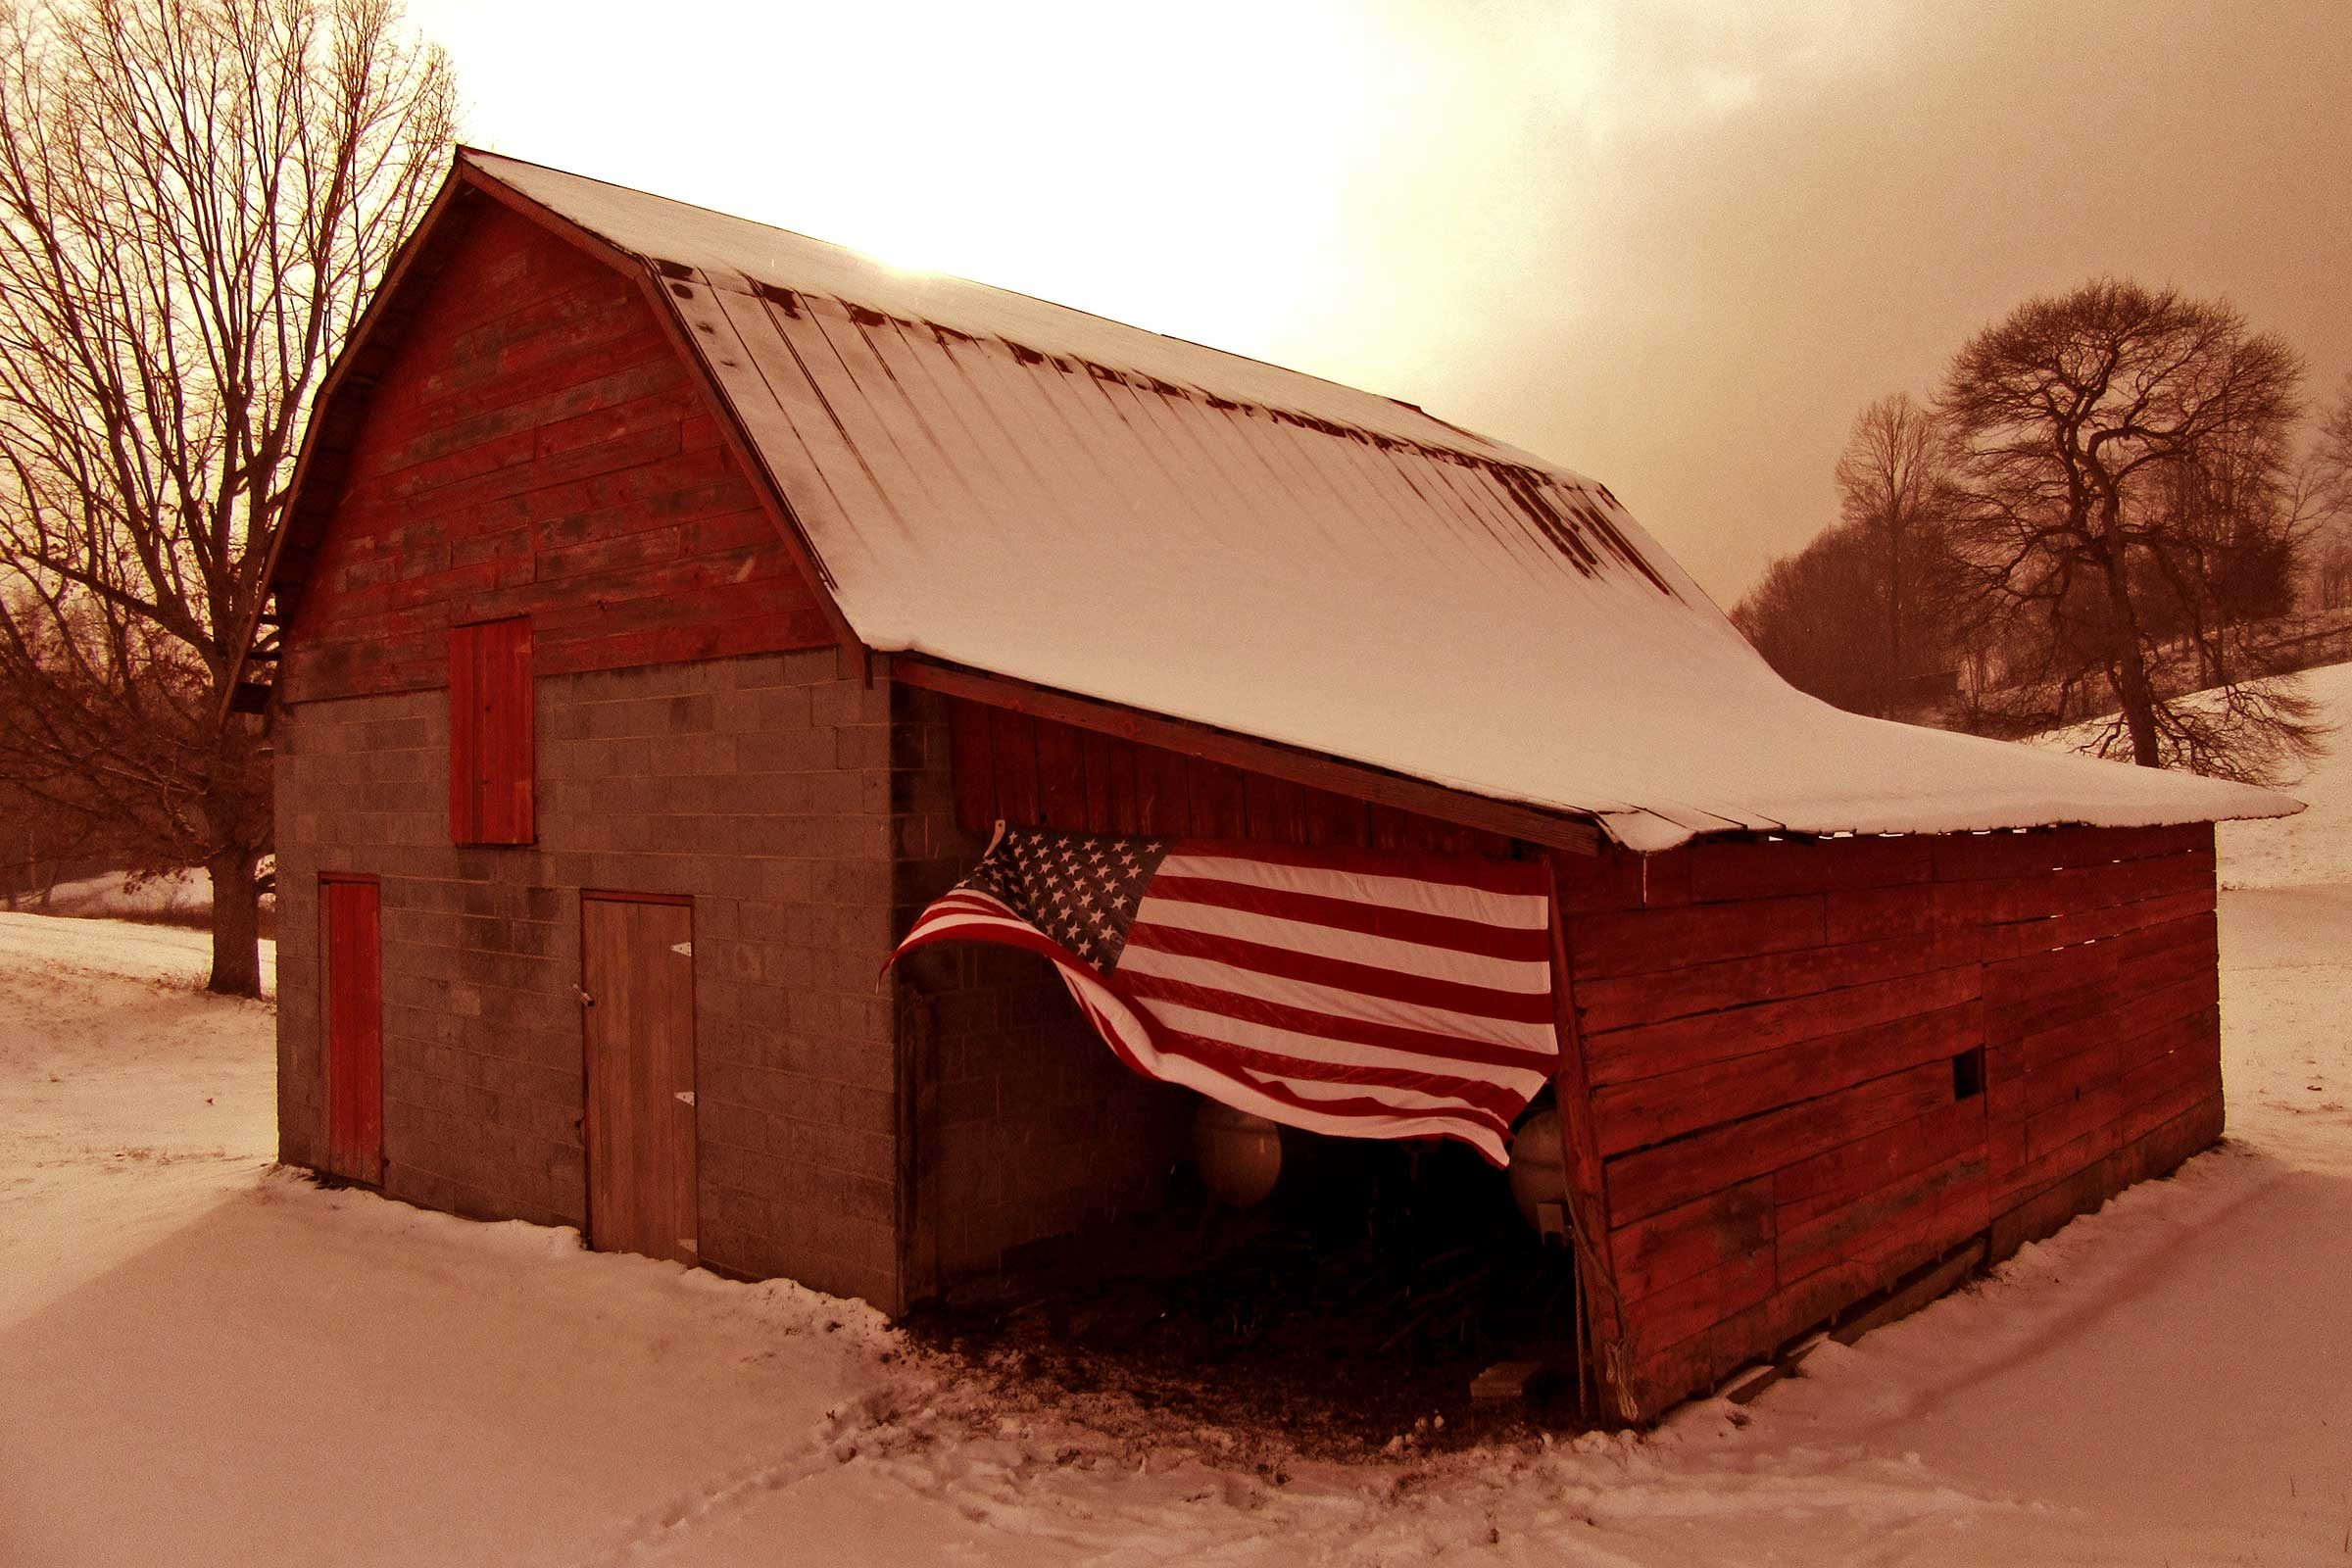 a large american flag waves on the side of a red barn in a snowy landscape in Cool Ridge, West Virginia